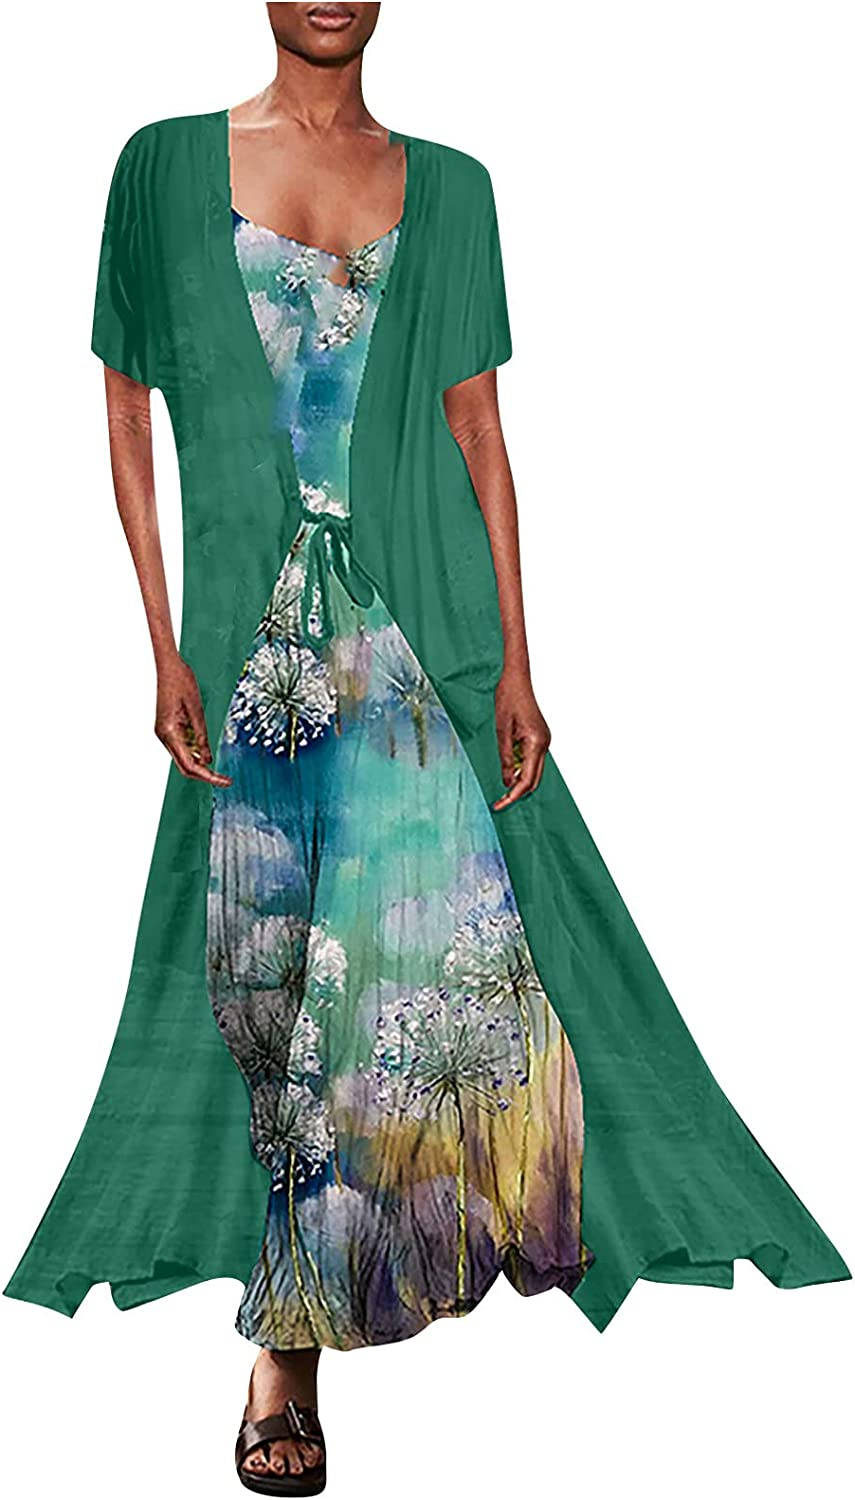 GOODTRADE8 Summer Dresses Maxi Dress Women's Casual Chiffon Short Sleeve Loose Two-Piece Dress with Straps